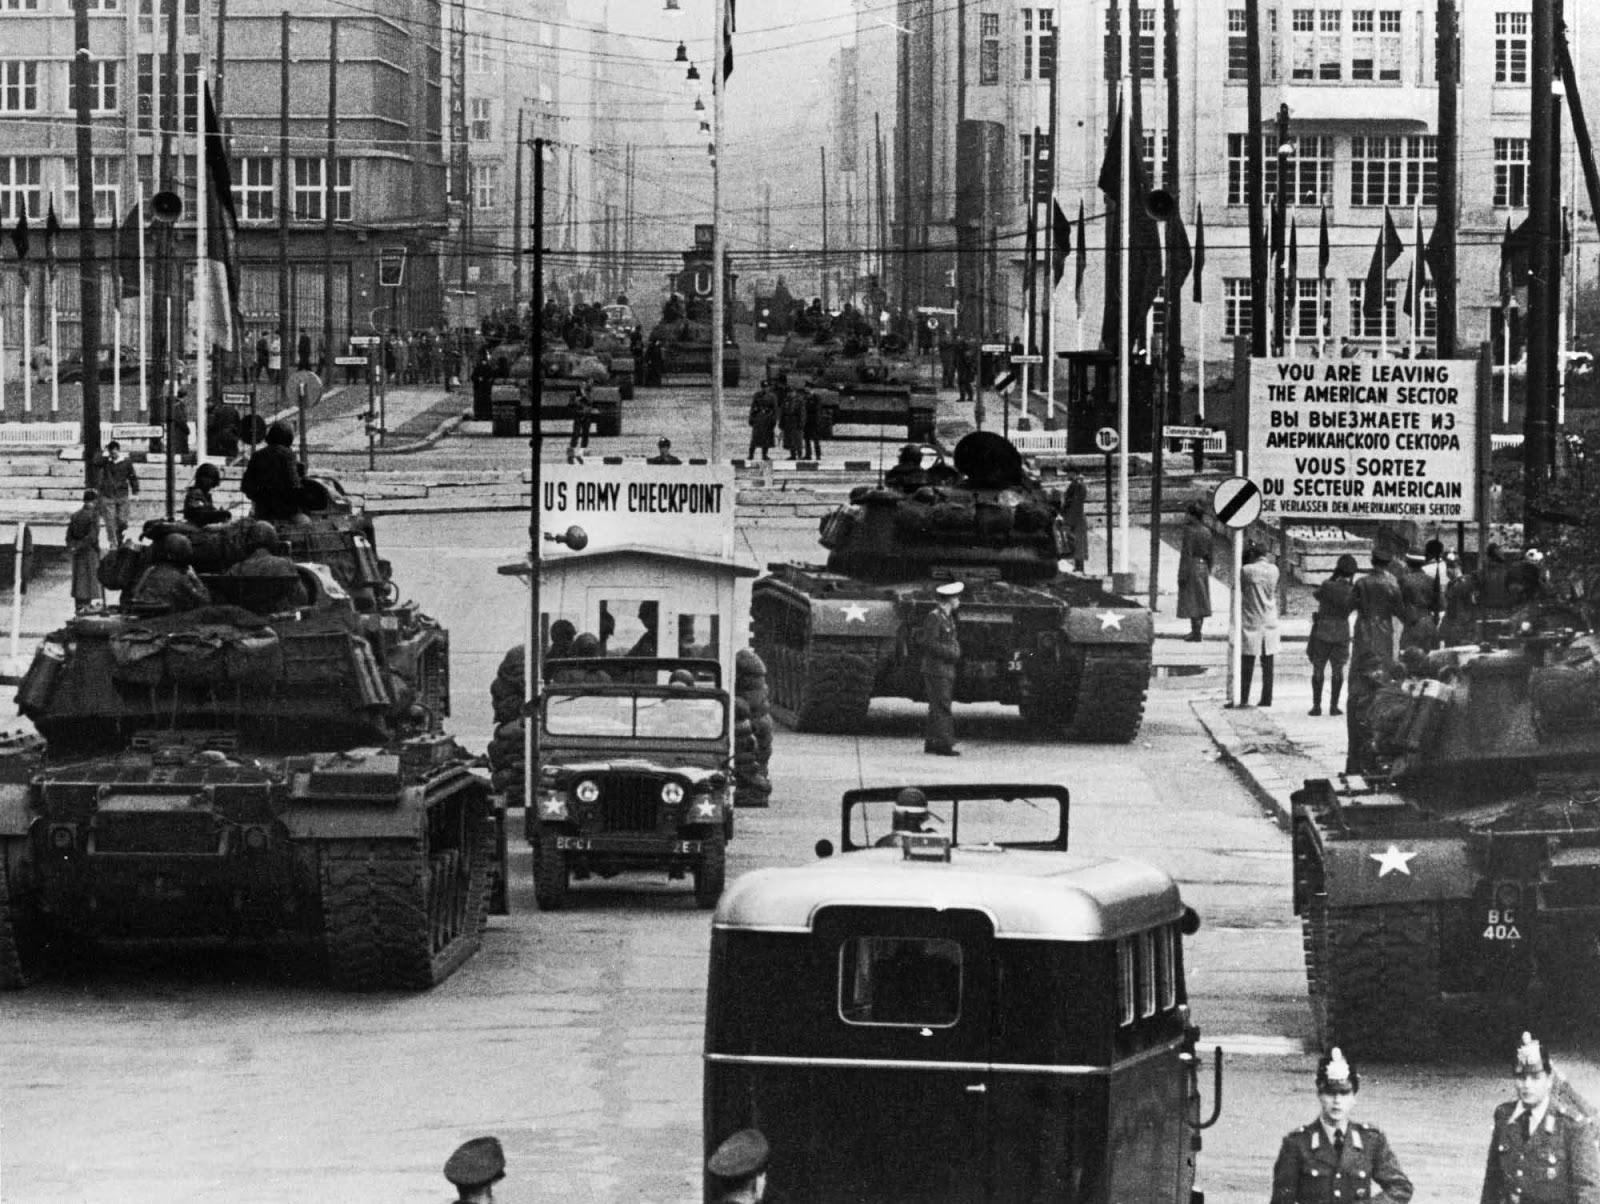 U.S. tanks facing Soviet Union tanks at Checkpoint Charlie in Berlin, 1961